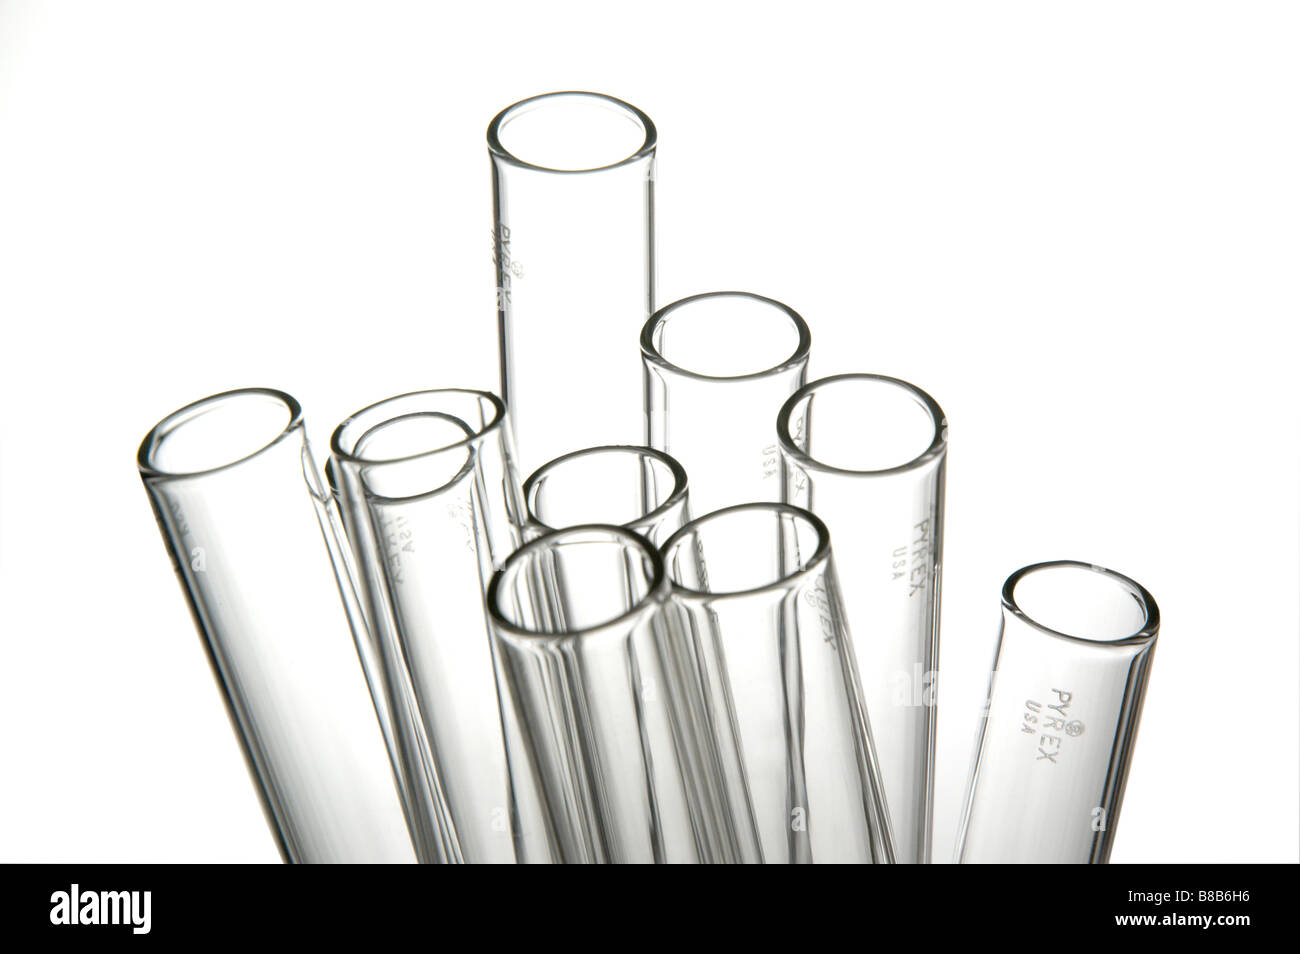 Group of glass test tubes - Stock Image